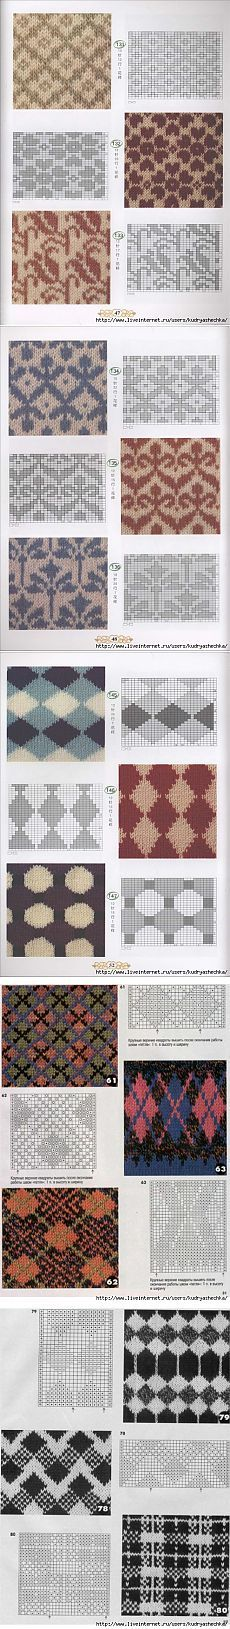 Best 25+ Fair isles ideas on Pinterest | Fair isle pattern, Fair ...